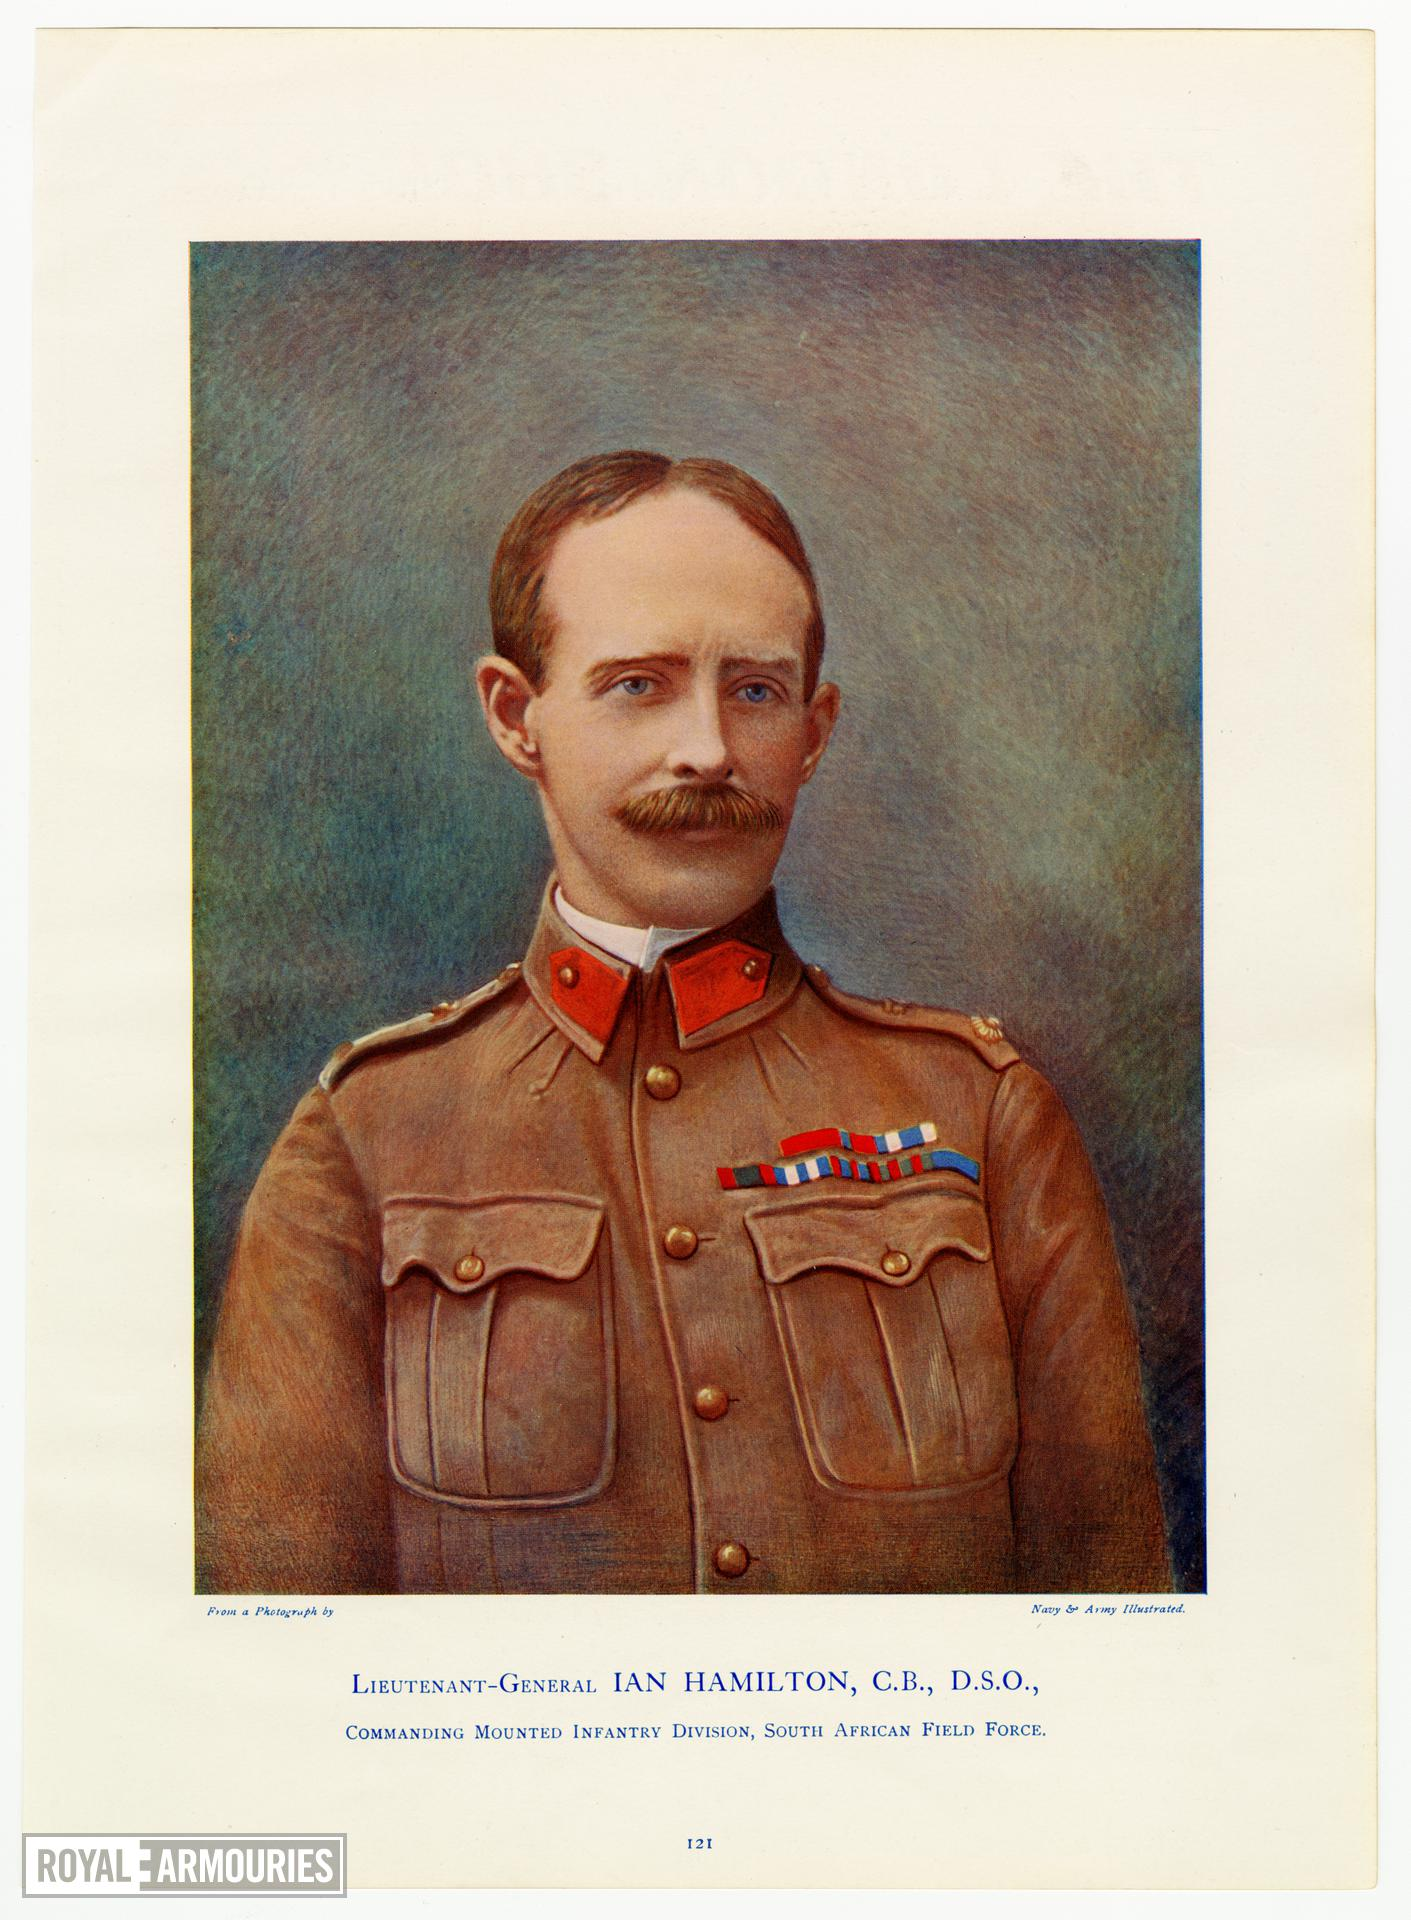 Lieutenant-General Ian Hamilton, C.B., D.S.O., Commanding Mounted Infantry Division, South African Field Force. Navy and Army Ilustrated.